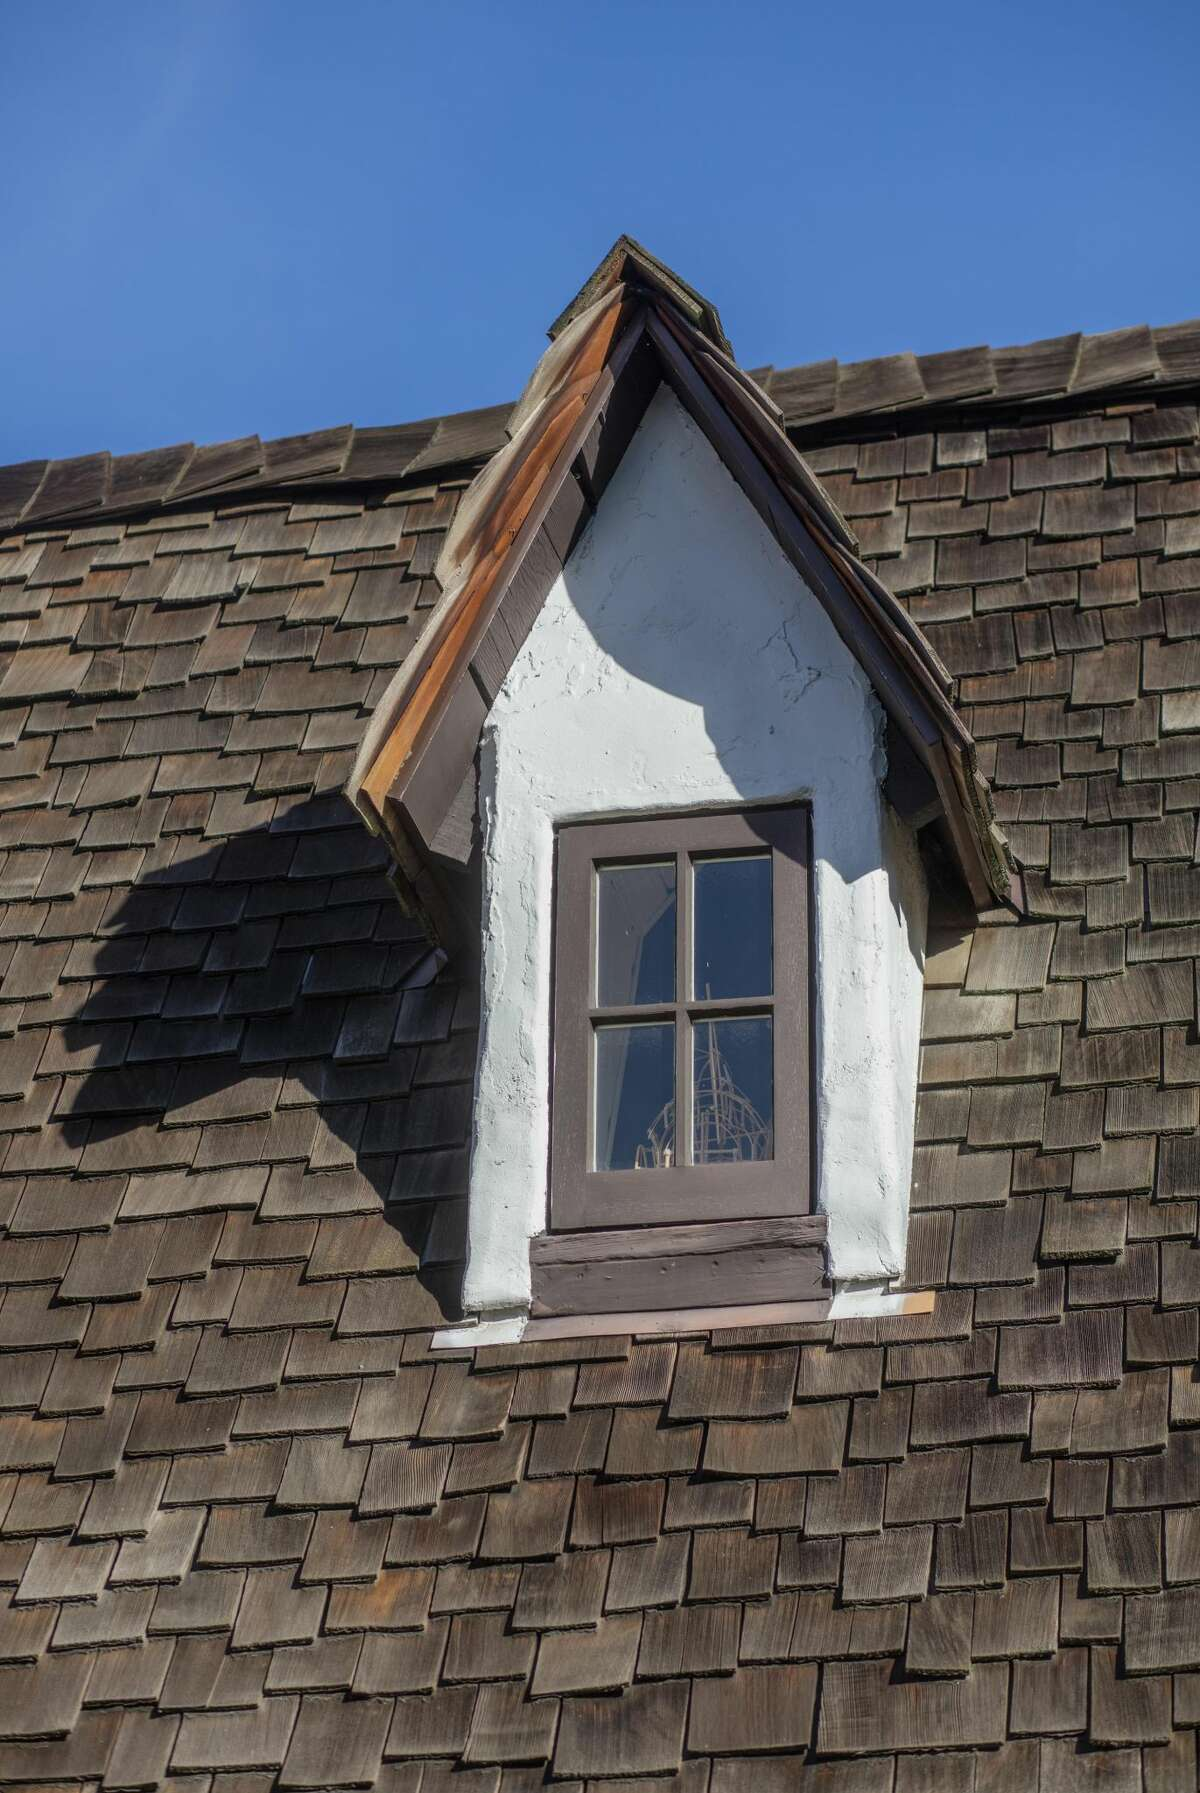 The wavy roofline and this dormer are a hallmark of the style.